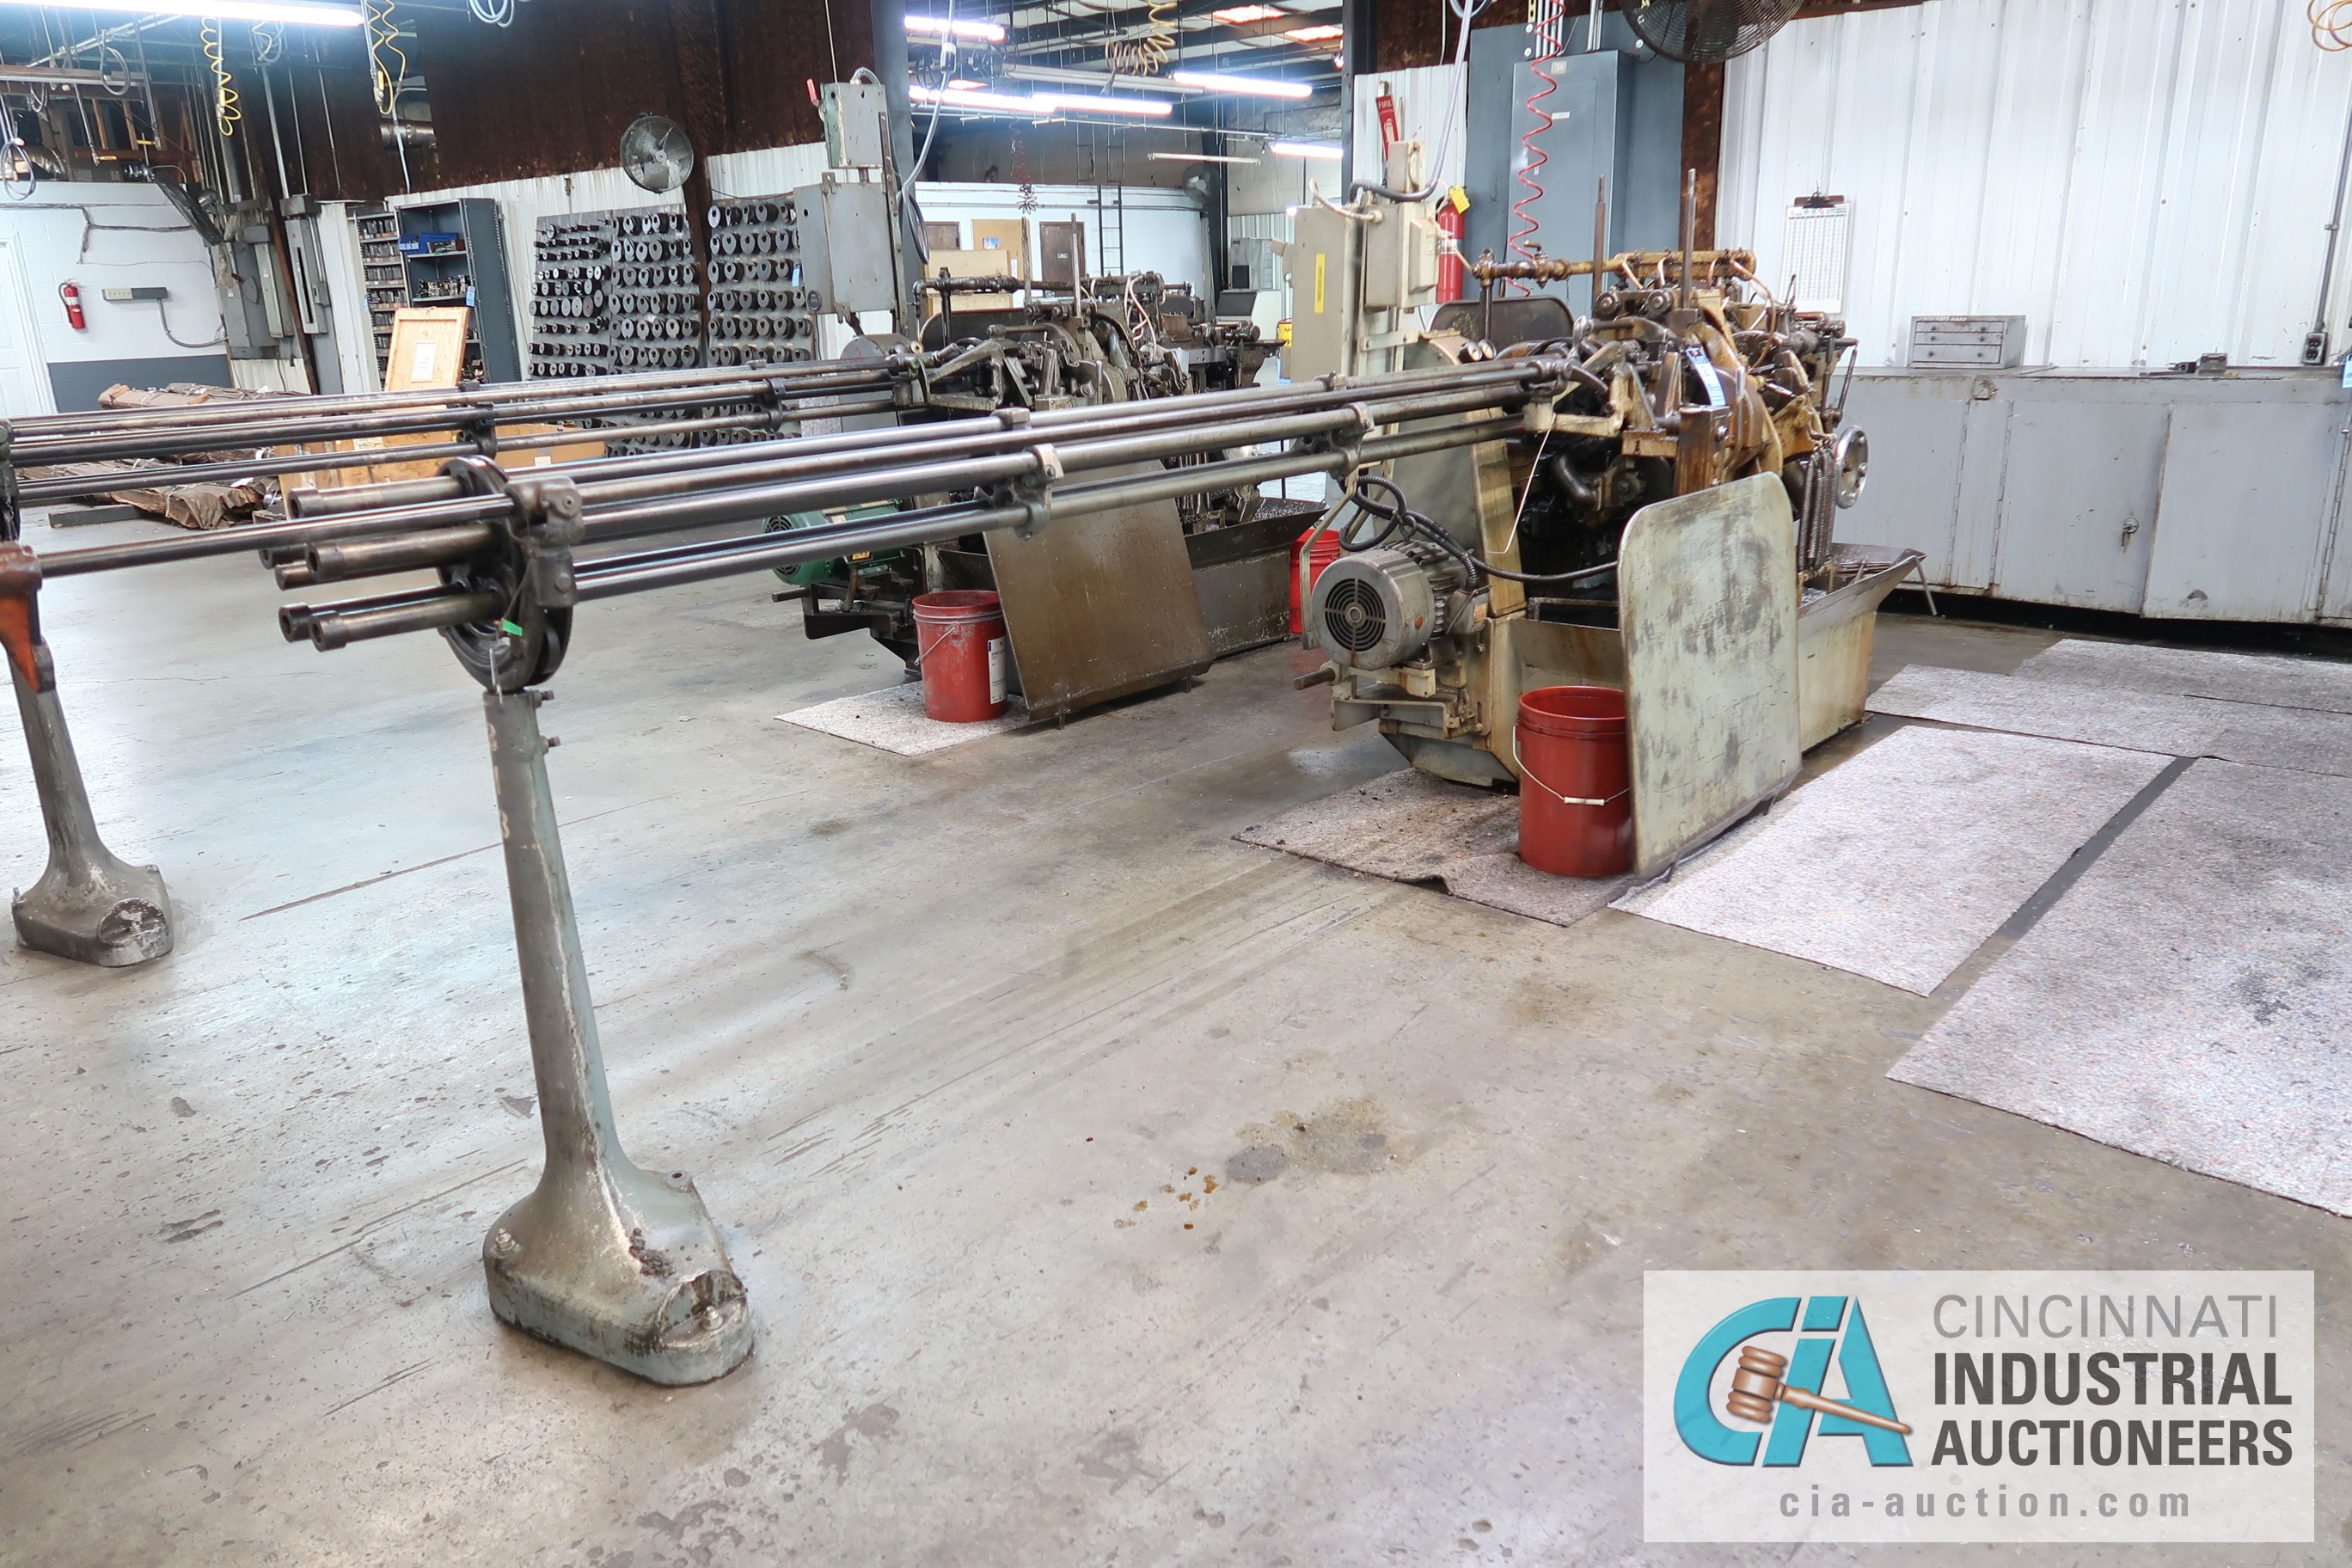 """3/4"""" DAVENPORT 5-SPINDLE SCREW MACHINE; S/N 8077 (NEW 11-1973), WITH THREADING CLUTCH, PICK OFF, - Image 4 of 4"""